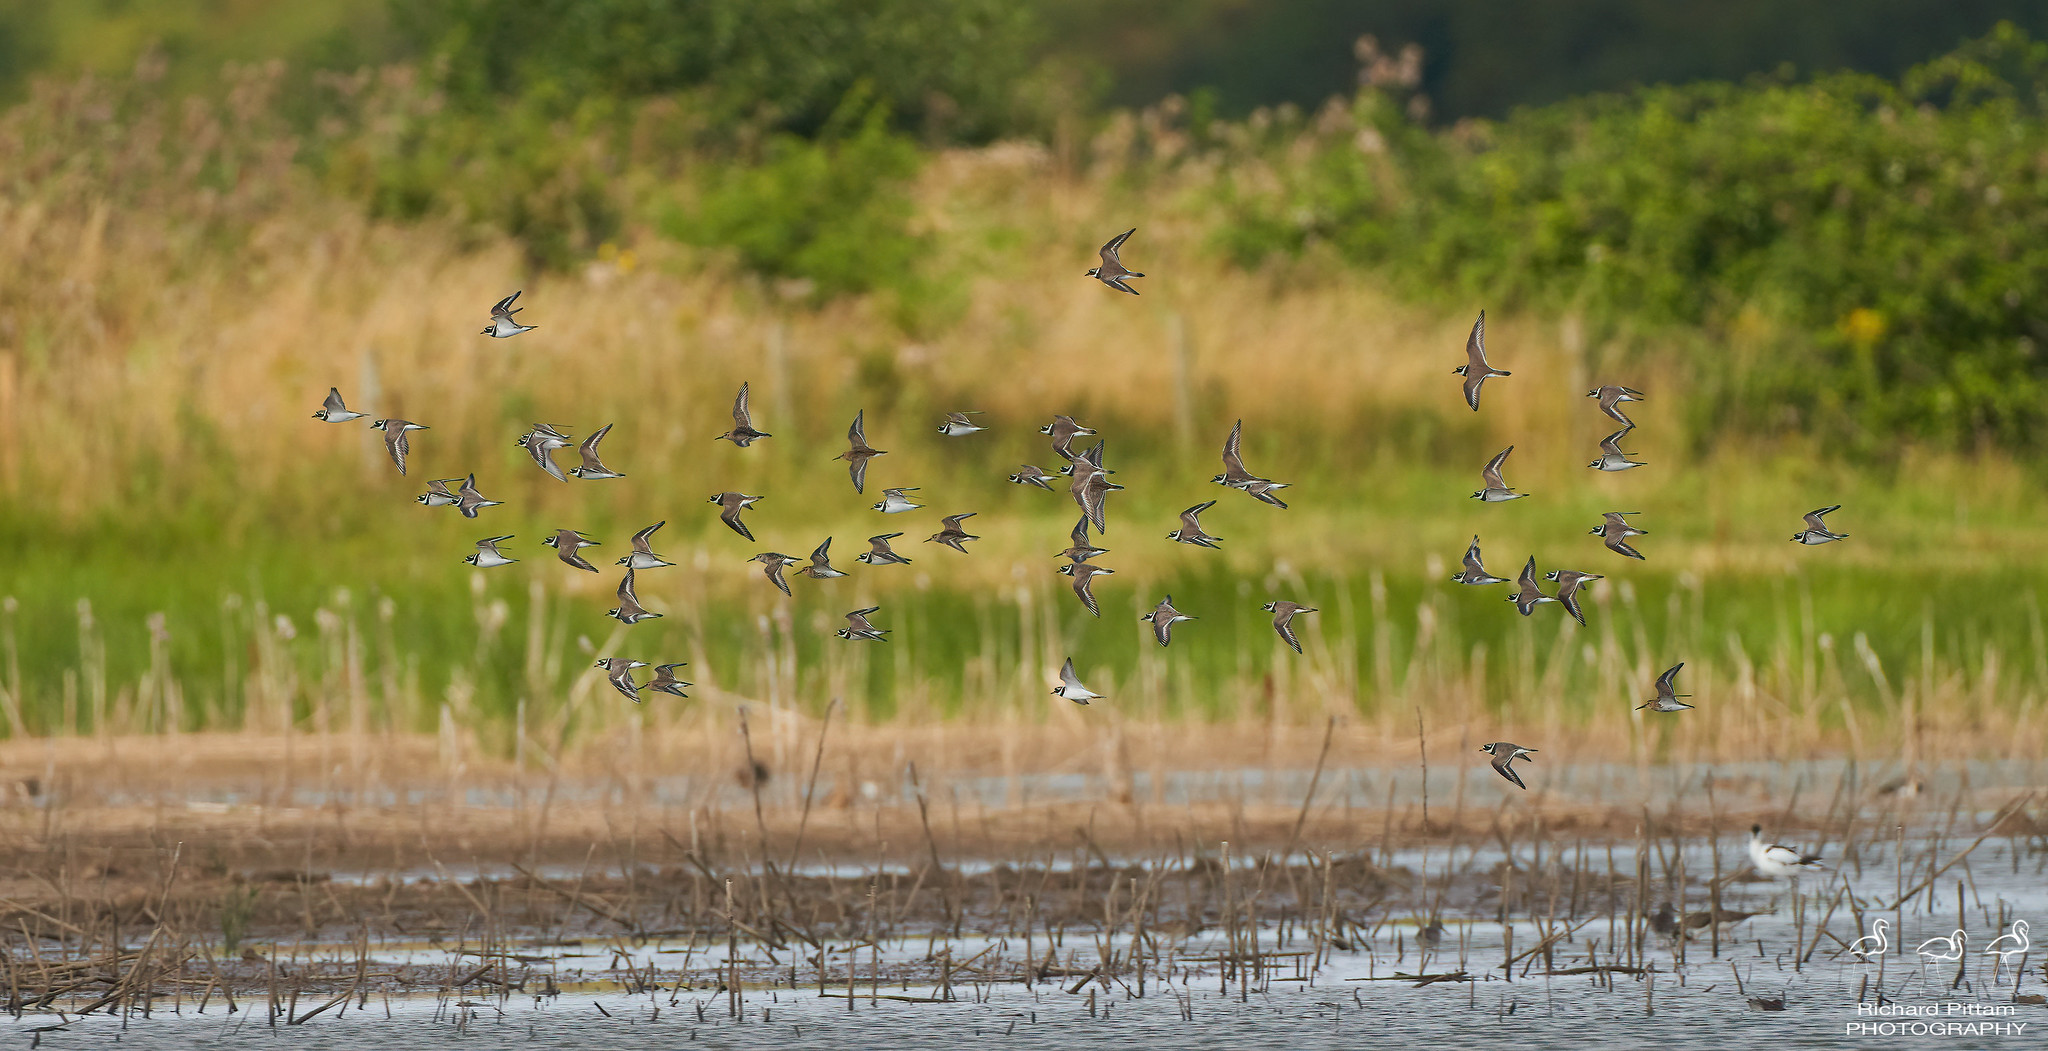 Ringed Plovers and Dunlin in flight